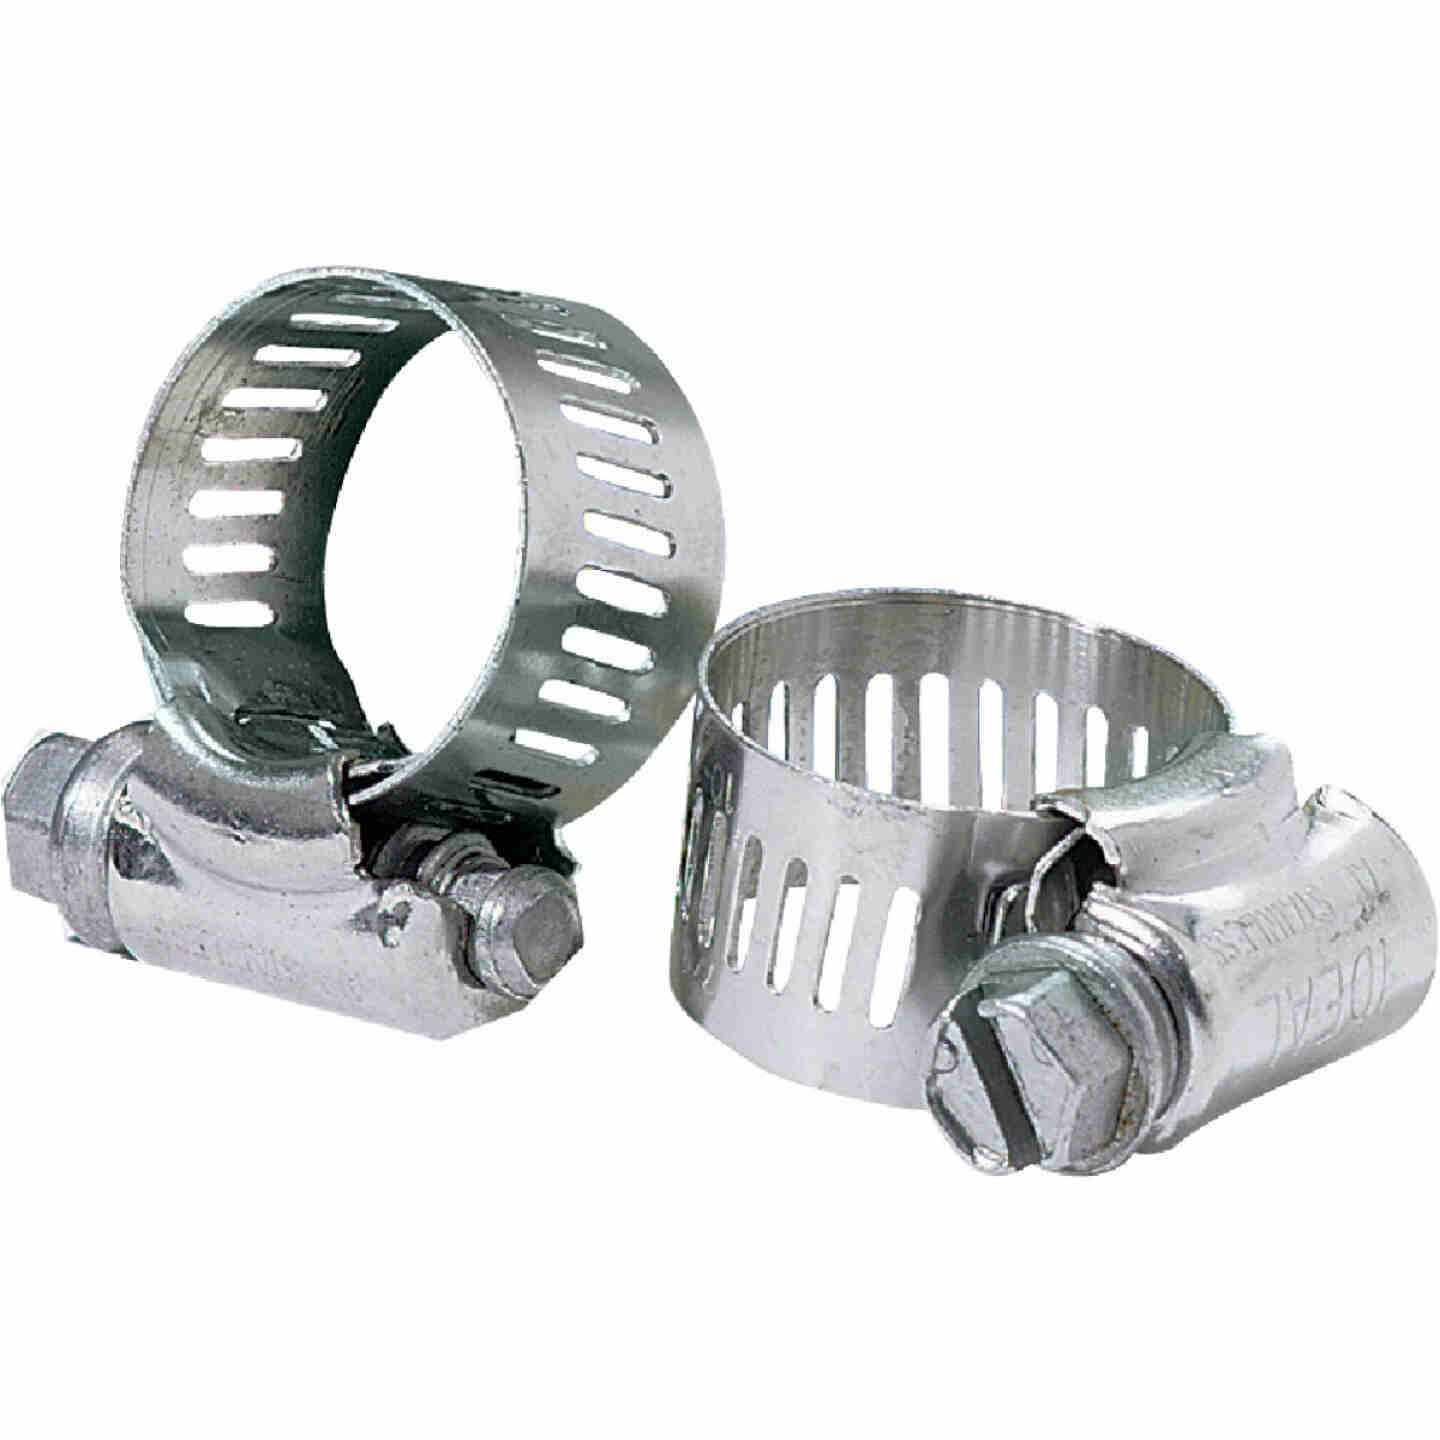 Ideal 1-3/4 In. - 2-3/4 In. 67 All Stainless Steel Hose Clamp Image 1